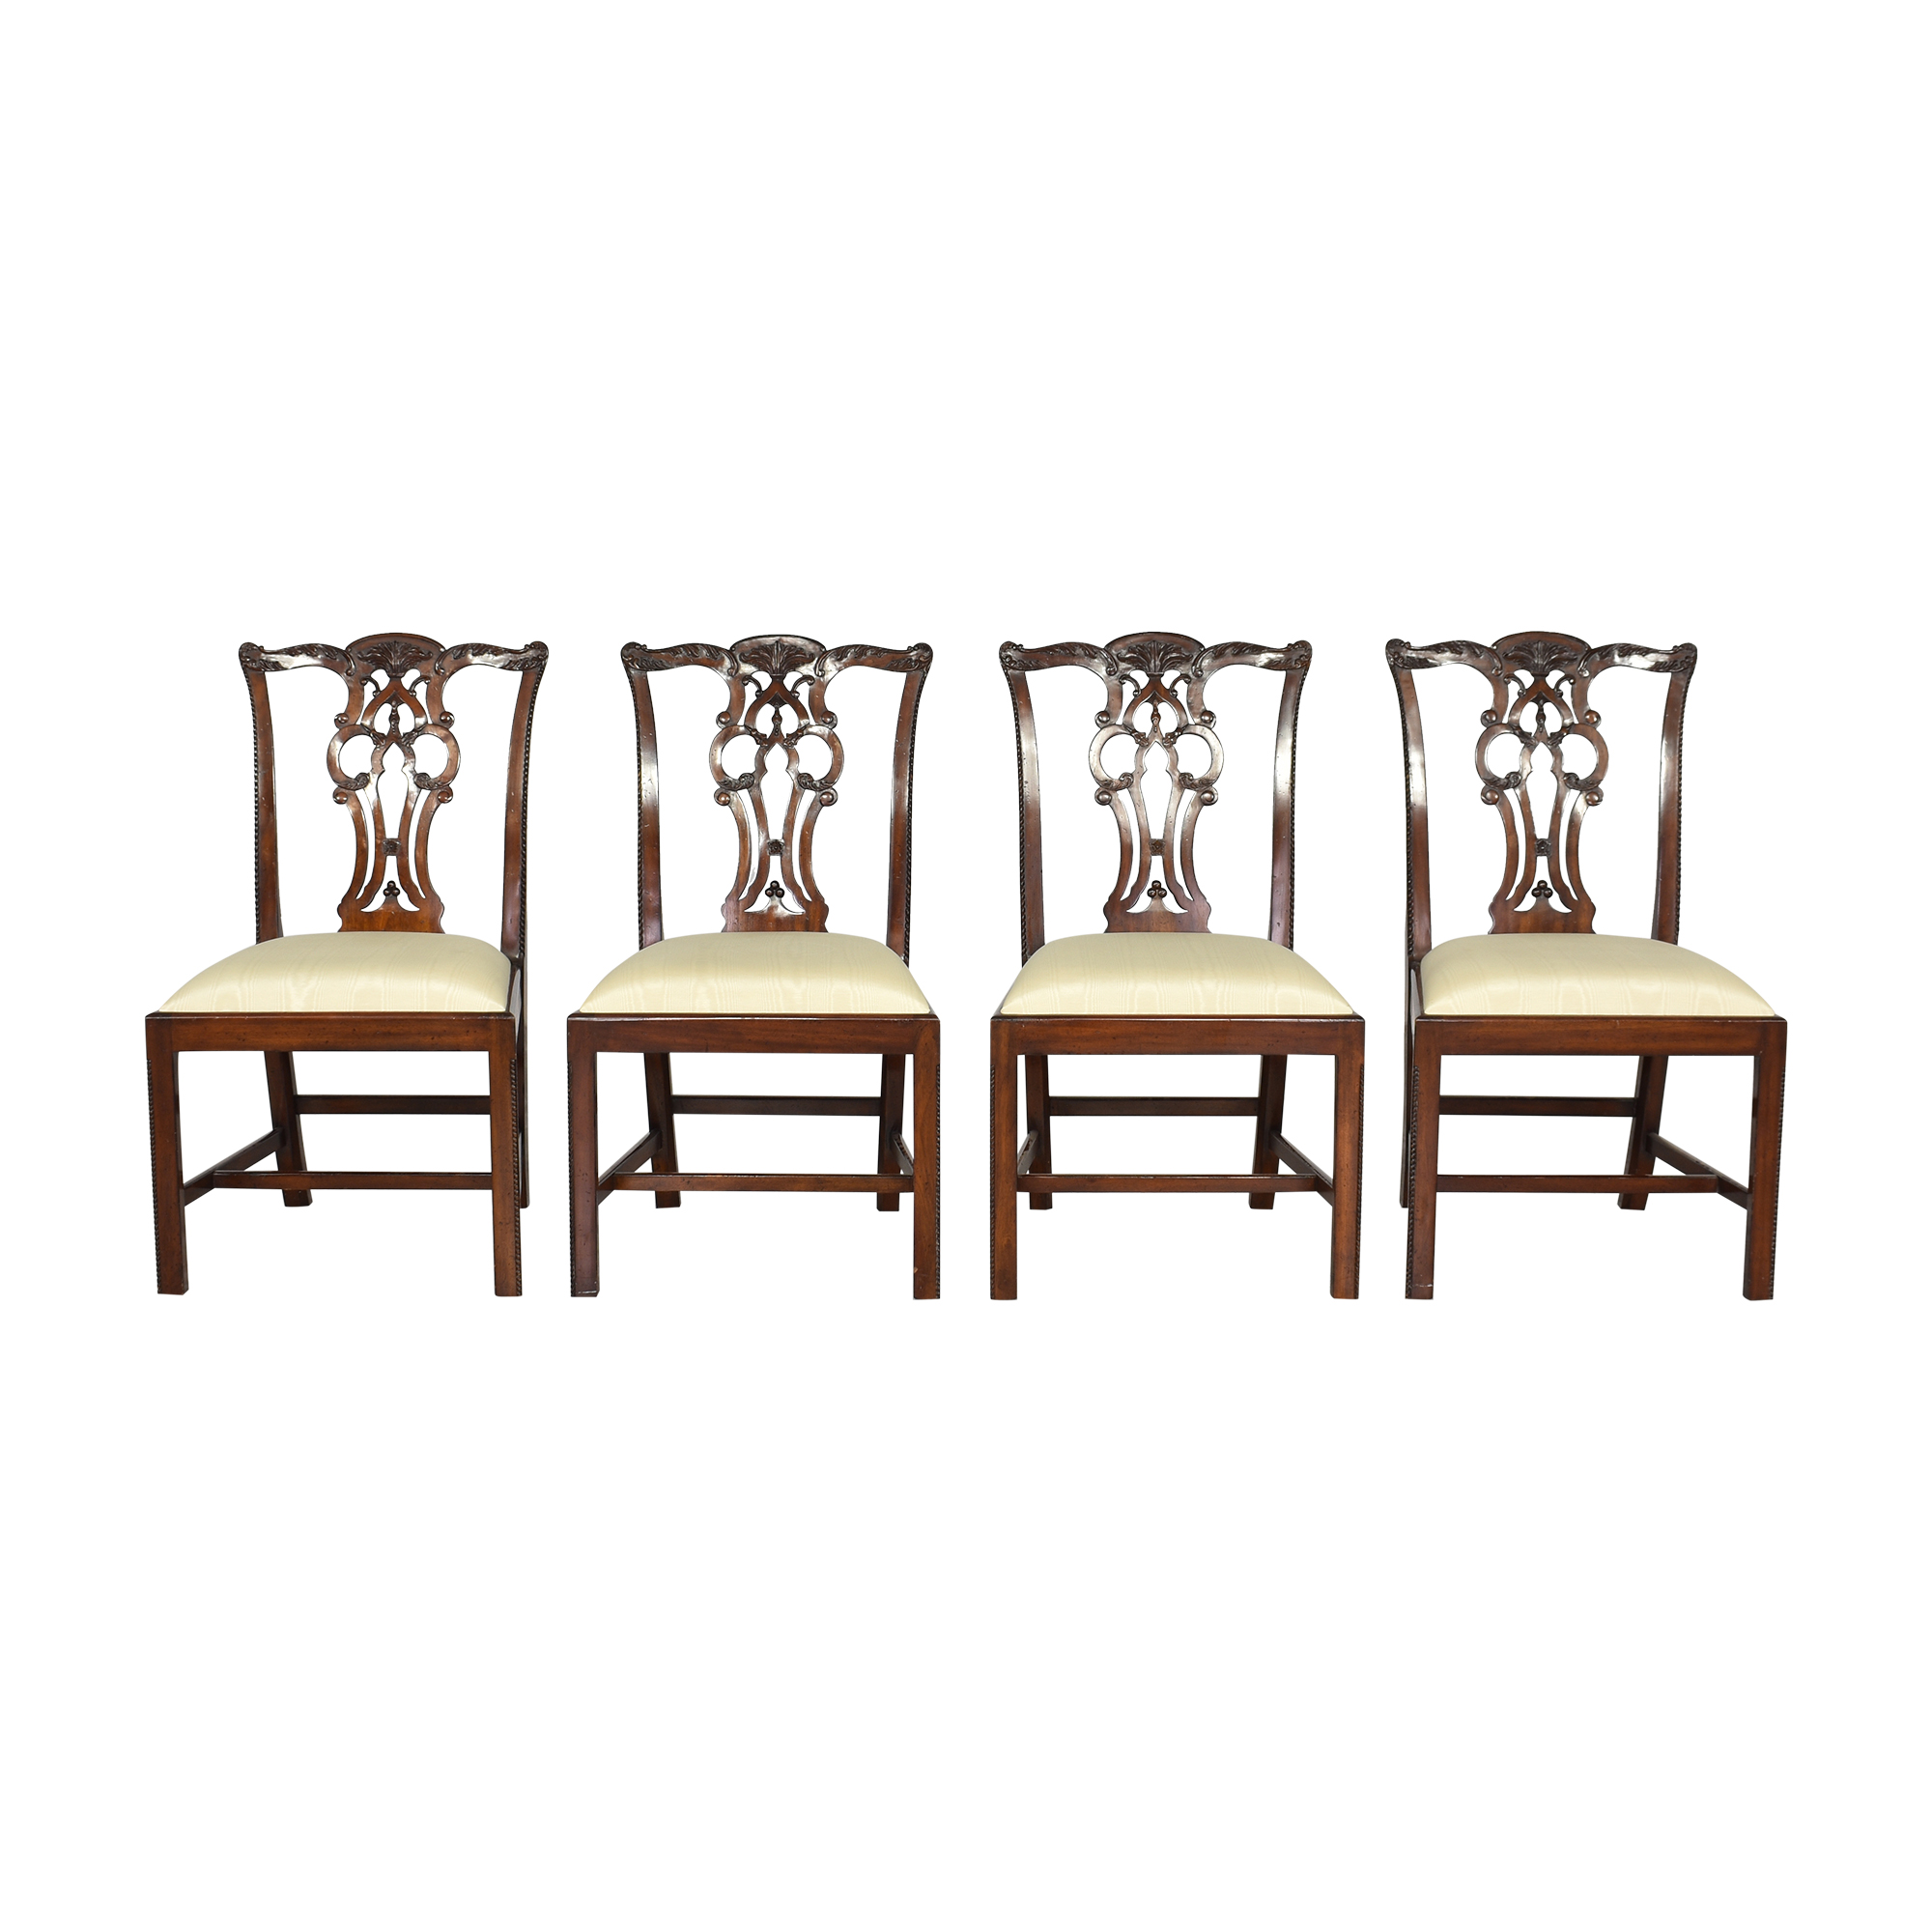 Maitland-Smith Maitland-Smith Chippendale Dining Chairs pa